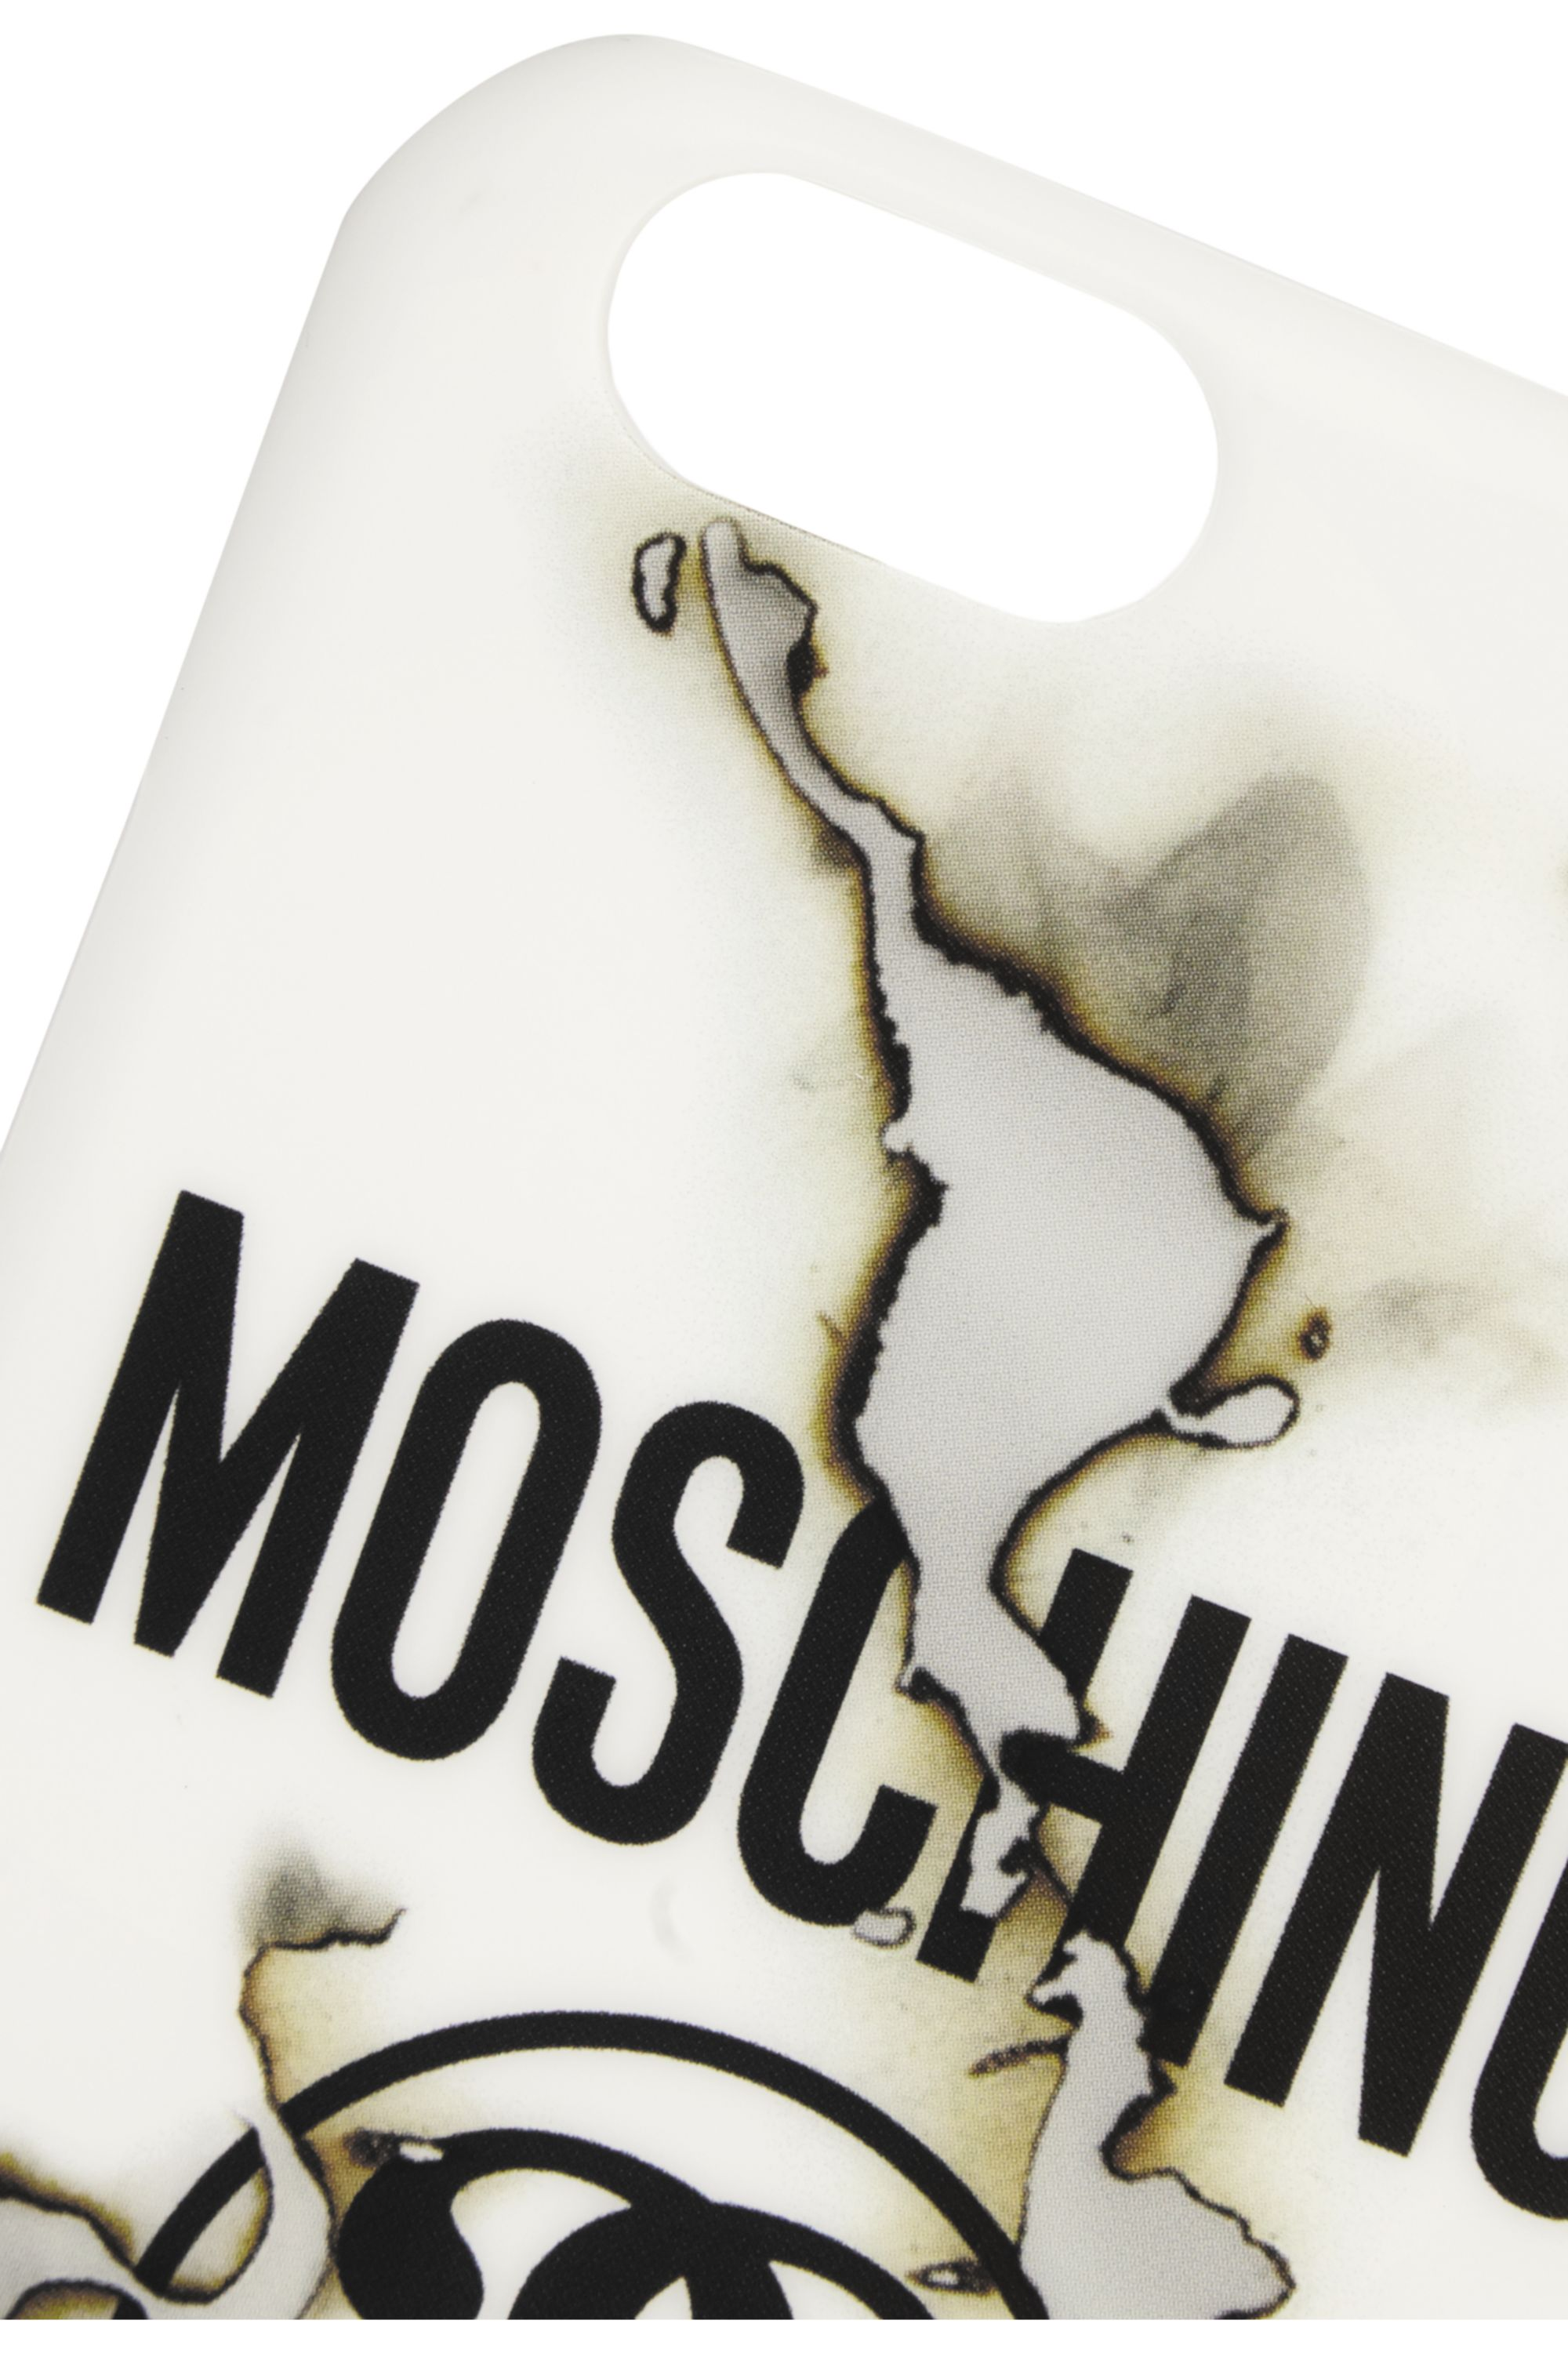 Moschino Printed acrylic iPhone 6 case